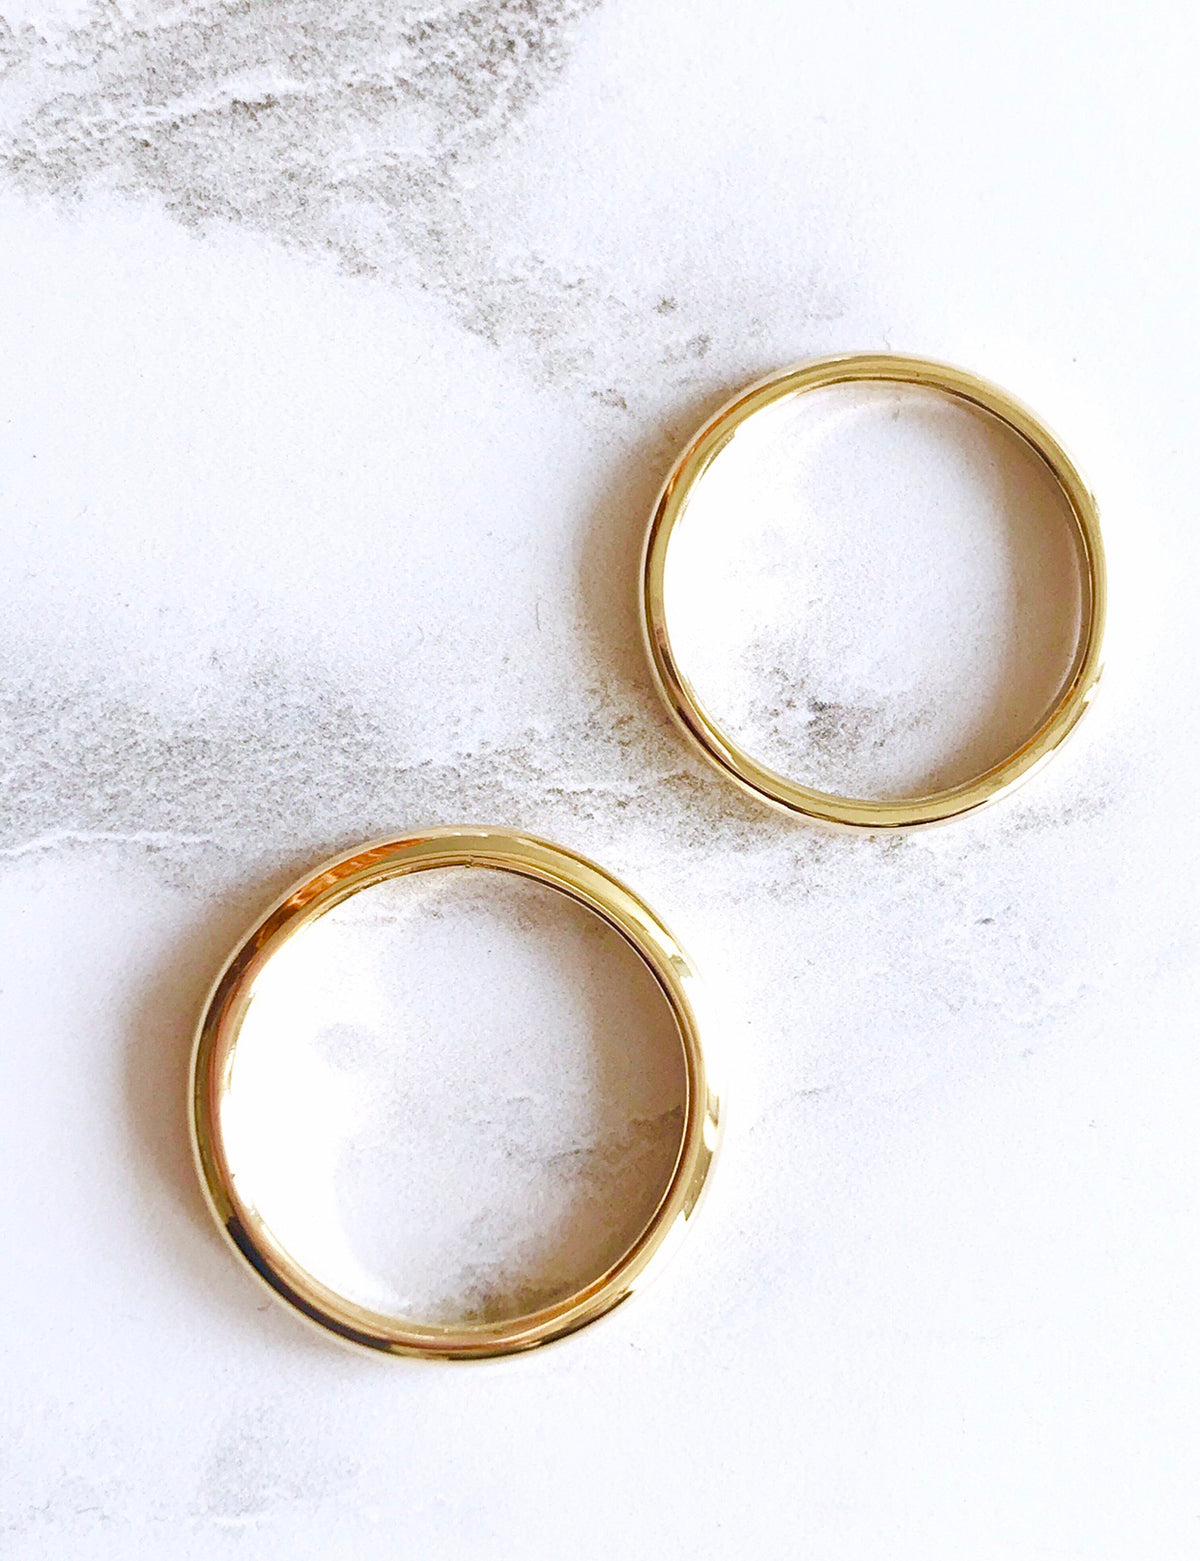 Gold Wedding rings Two rings 18ct yellow, 18 ct rose gold or 18 ct white gold